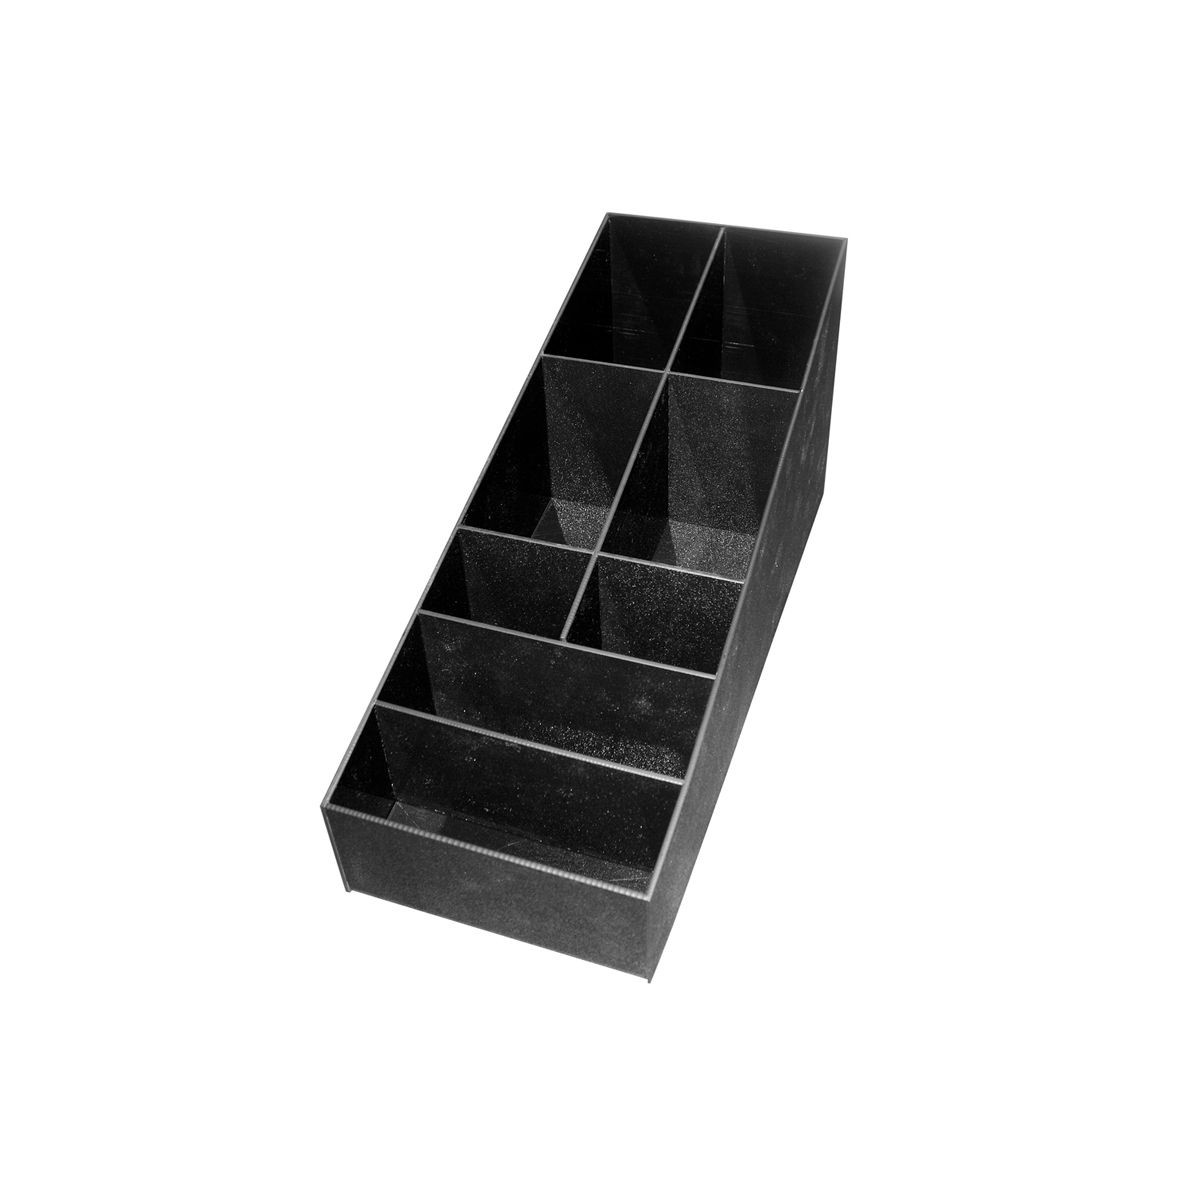 Service Ideas CCPL8 8-Compartment Condiment Caddy